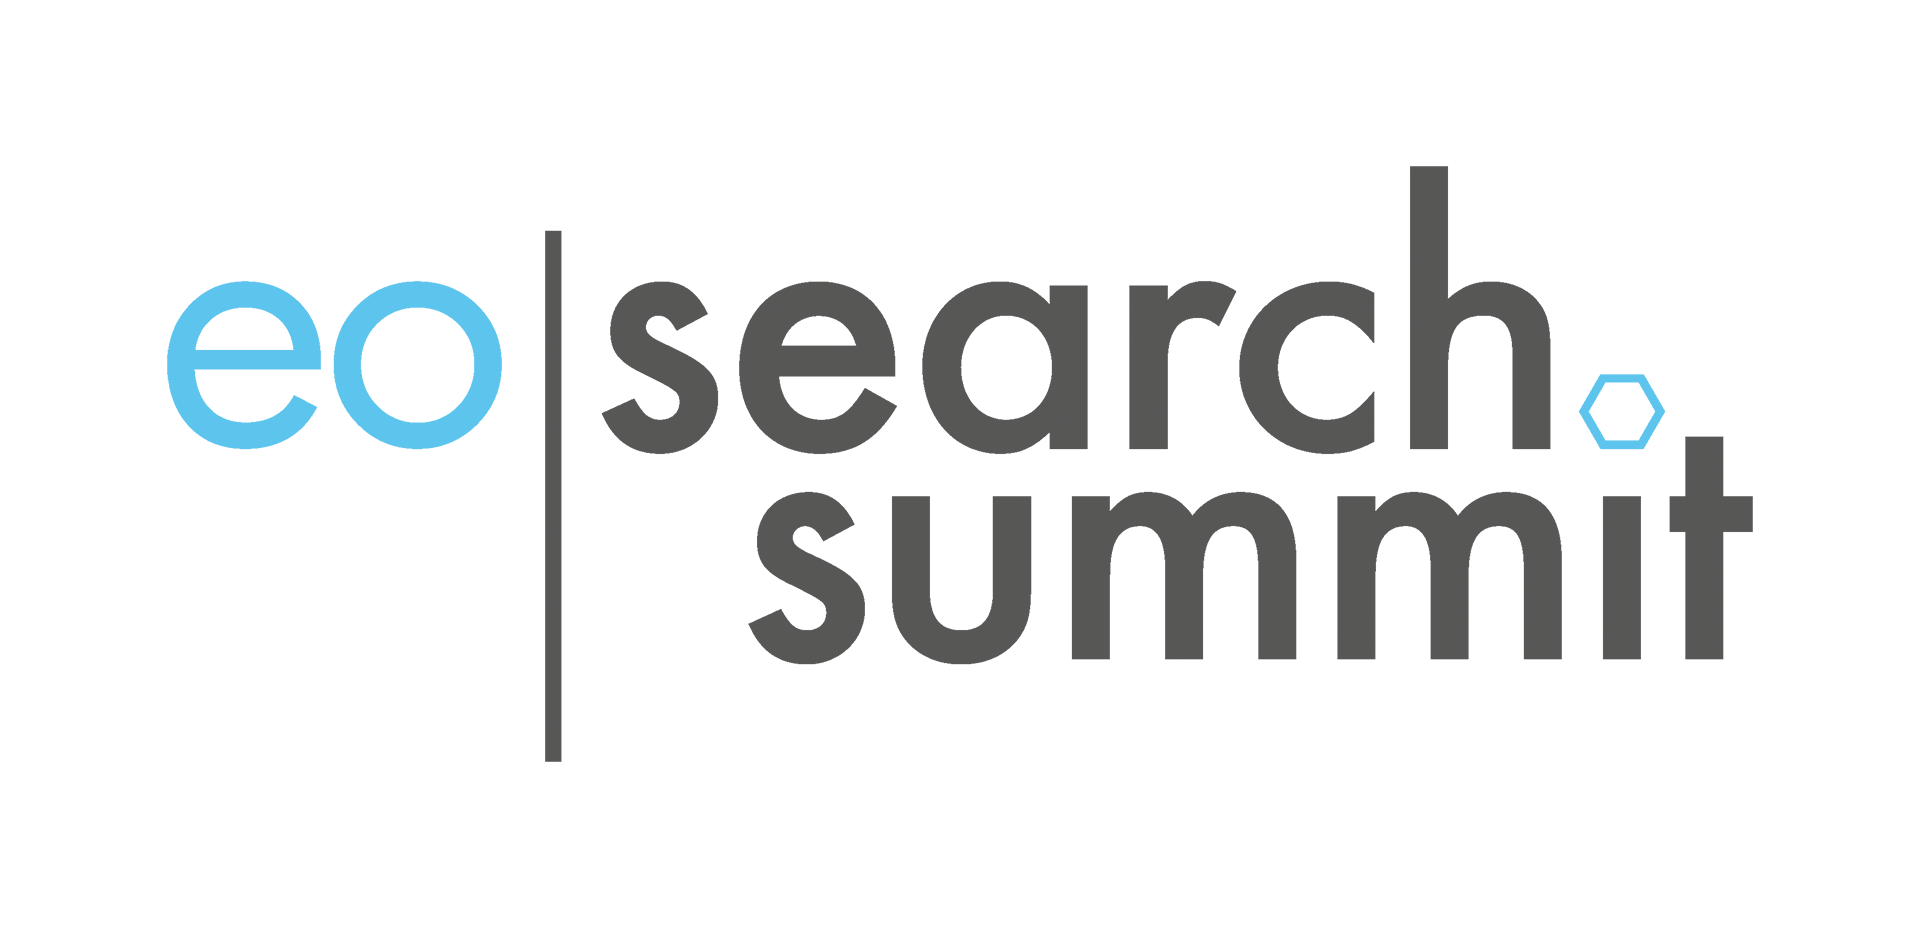 eoSearchSummit